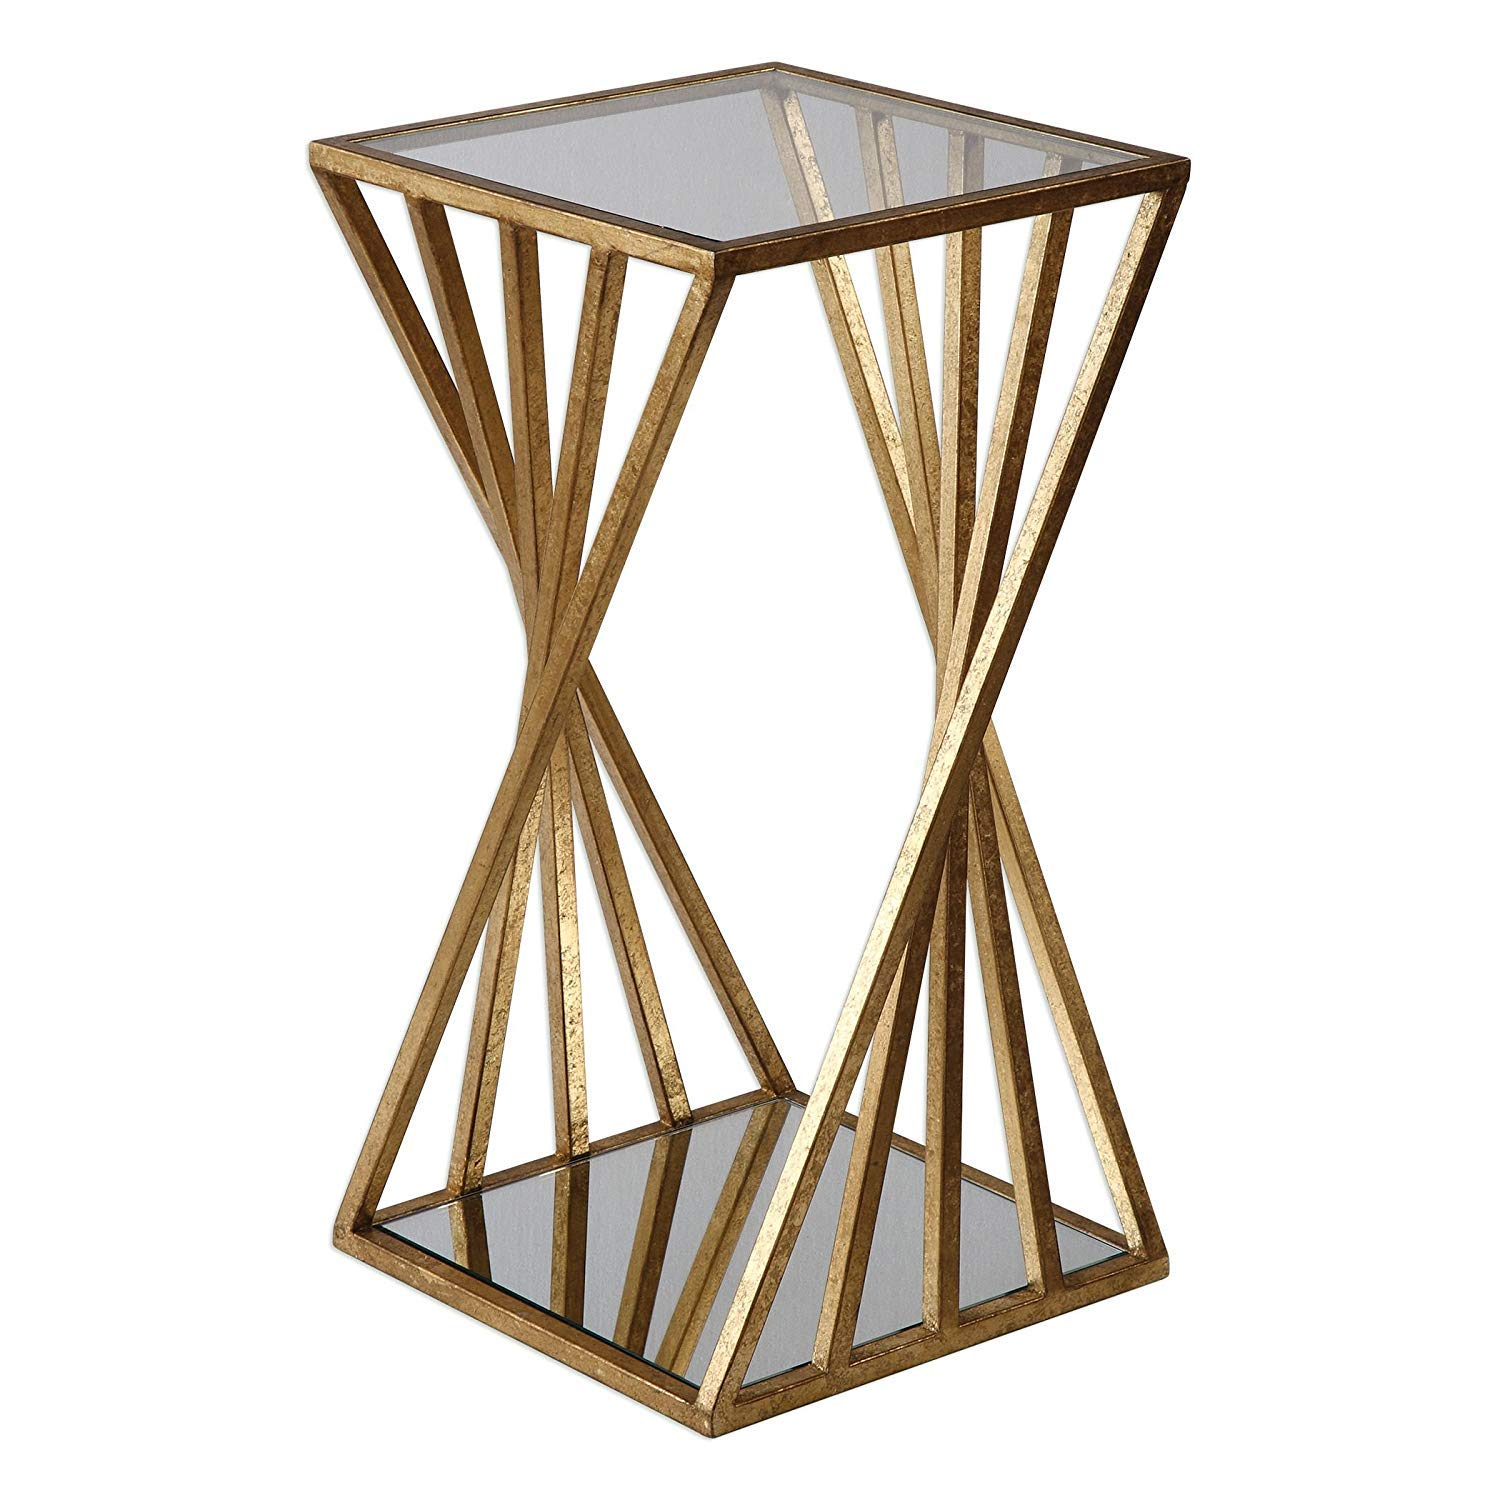 gold angle geometric square accent table open pedestal modern column kitchen dining narrow hallway cabinet navy lamp metal legs small round patio decorative storage furniture